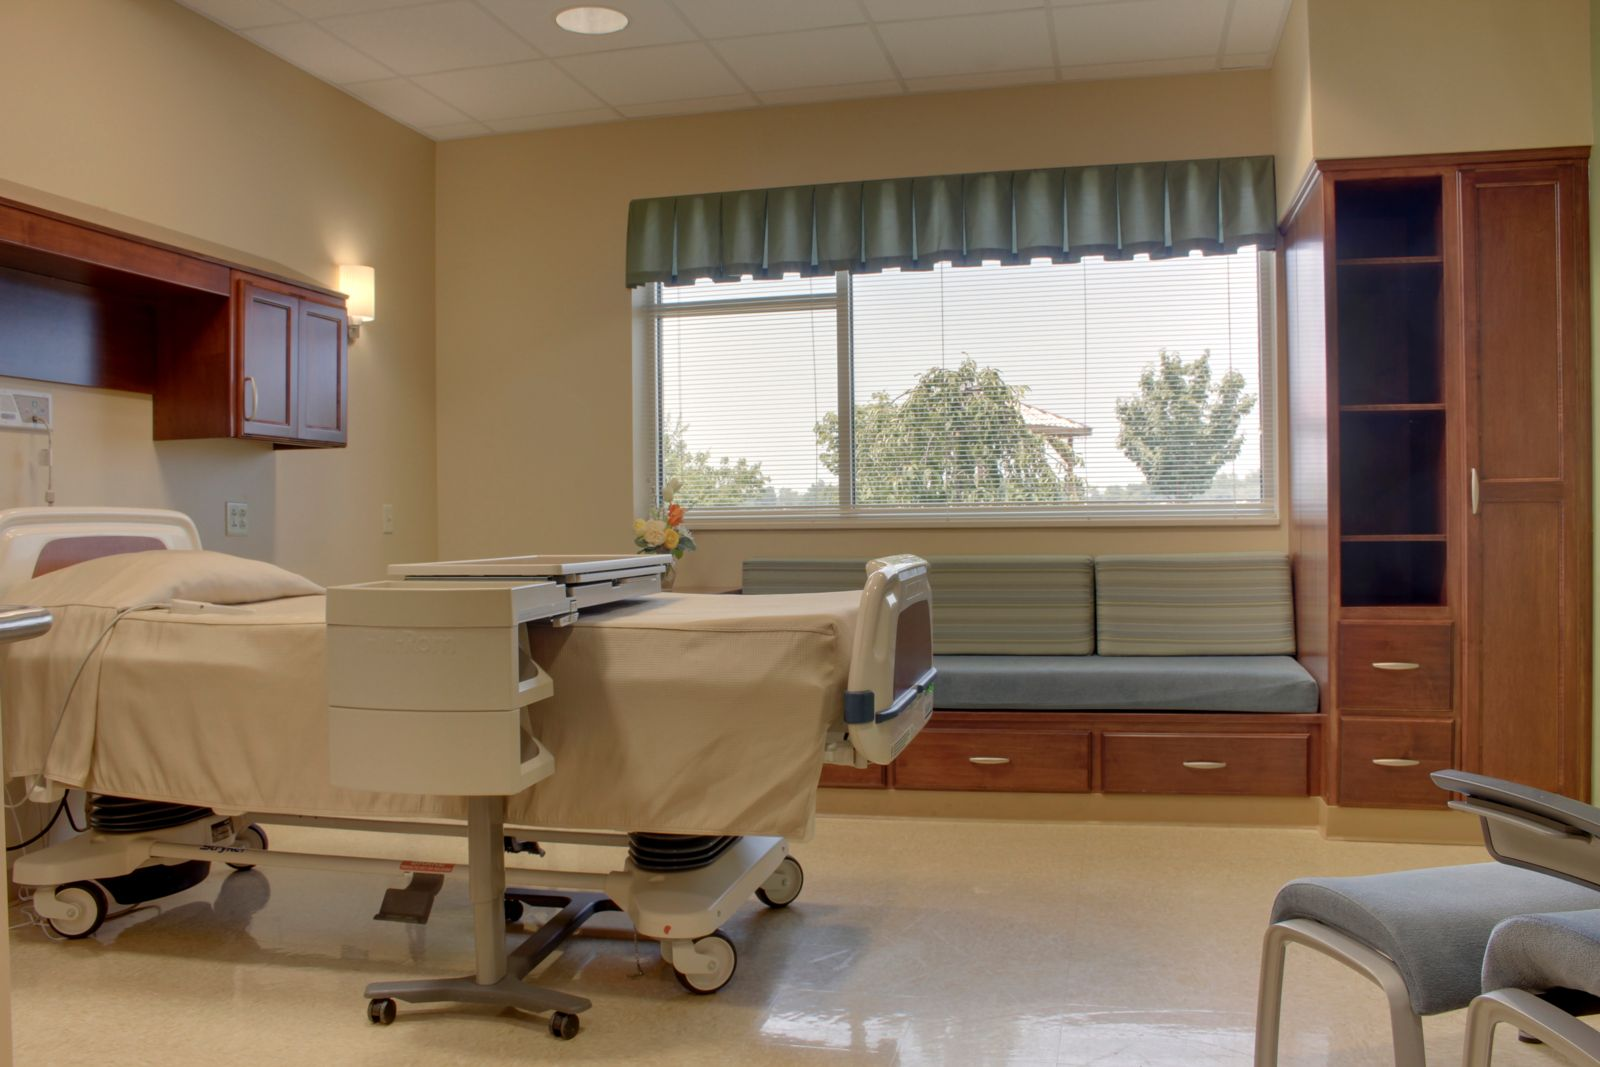 Hospital room with patient and family -  We Have A Family Center With Day Beds Window Sets That Turn Into Beds Every Room Is Design With Your Comfort And Privacy In Mind